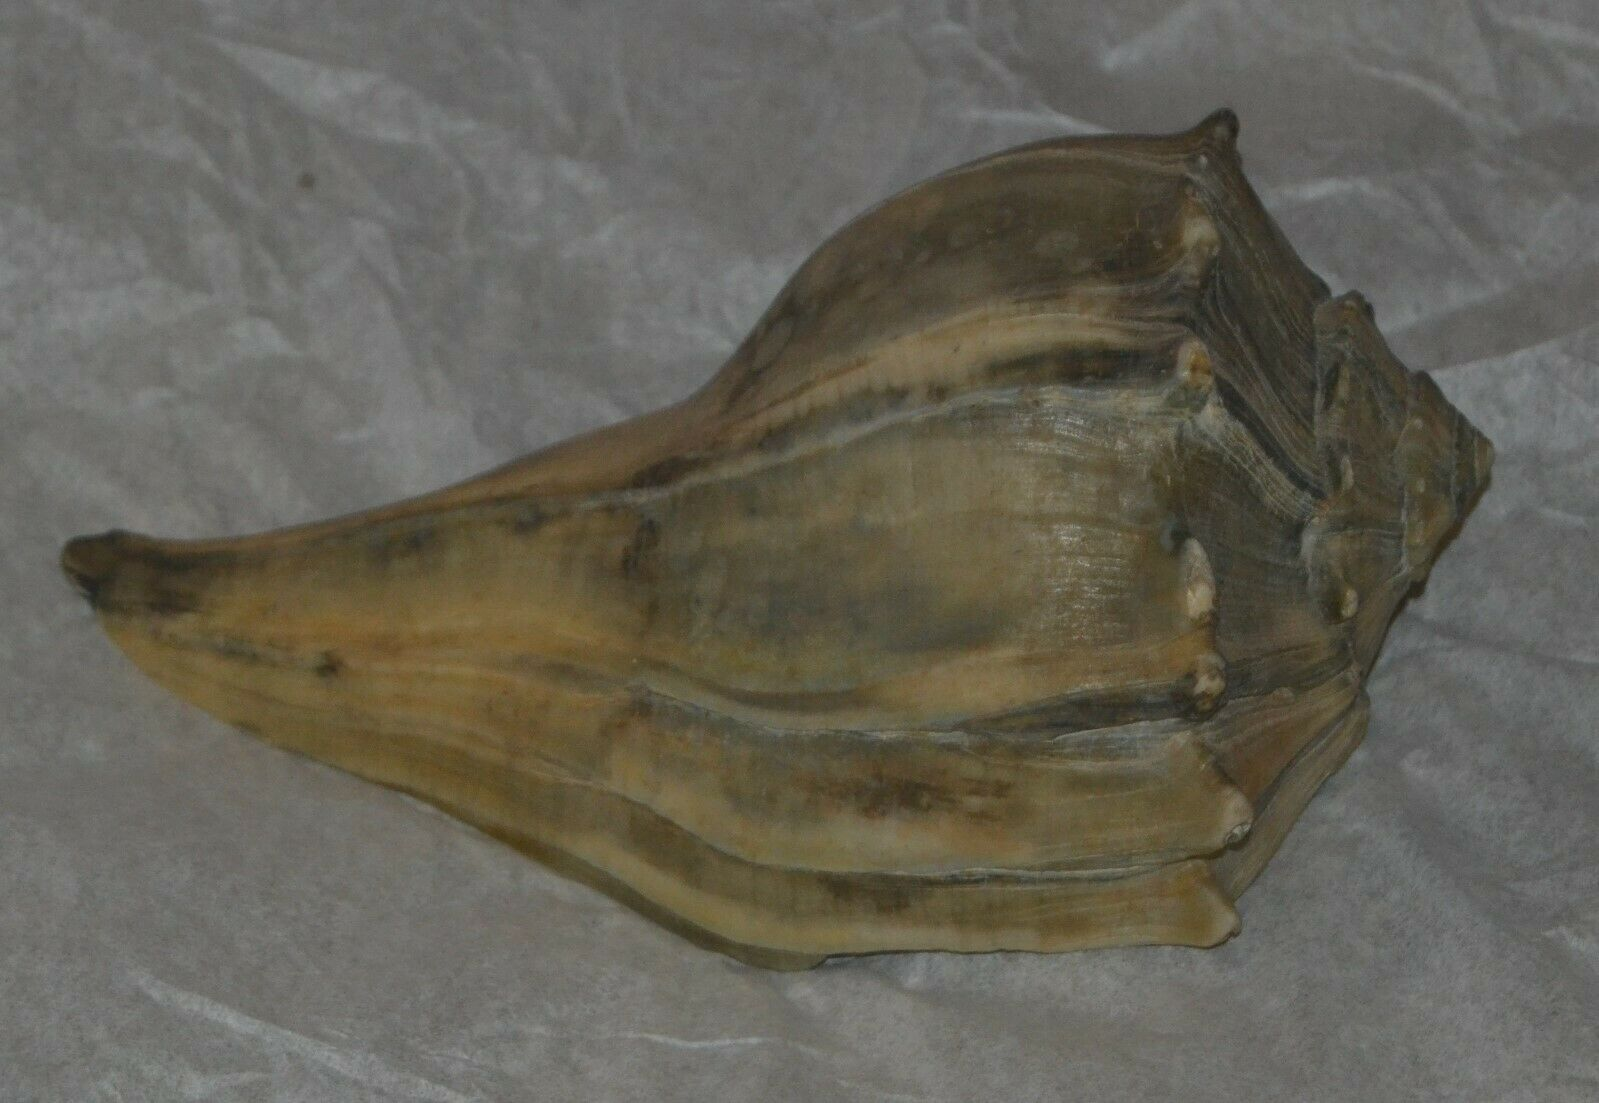 Primary image for Conch Shell Seashell